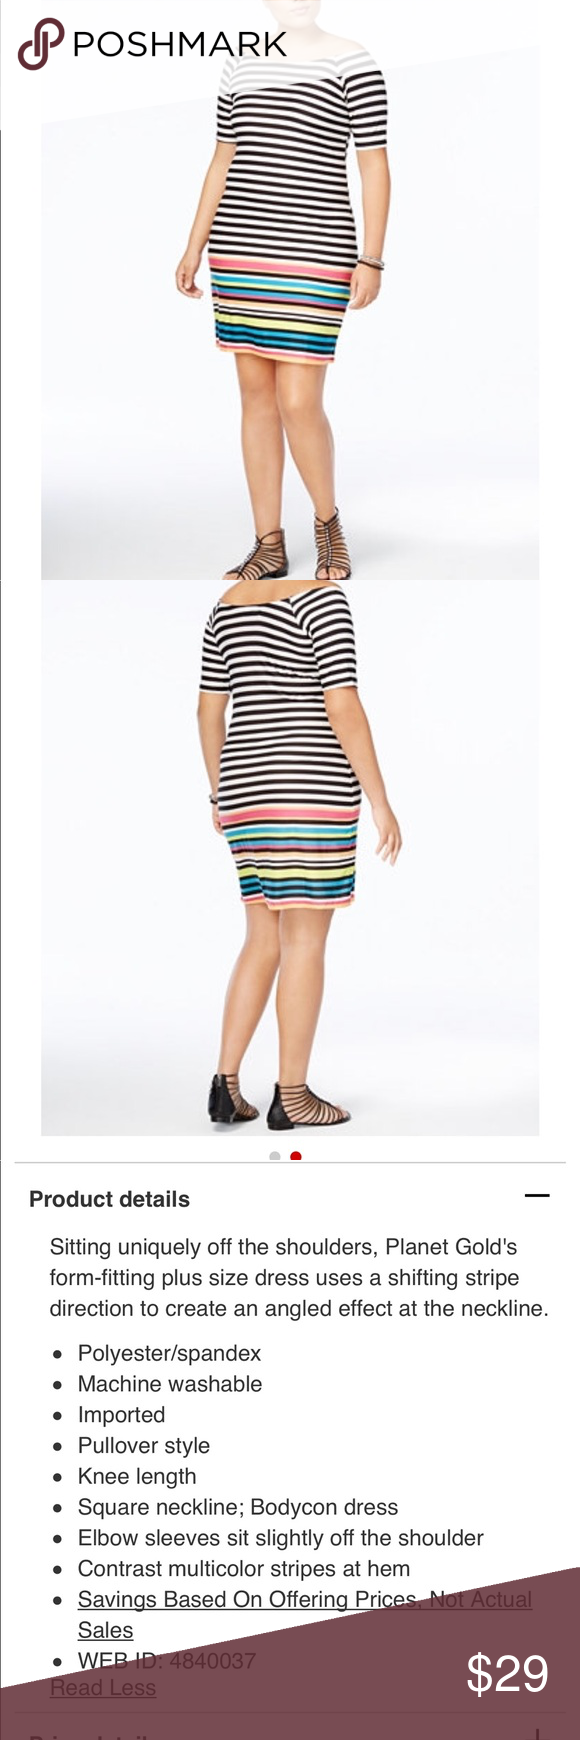 New planet gold plus size off the shoulder dress nwt stripe print